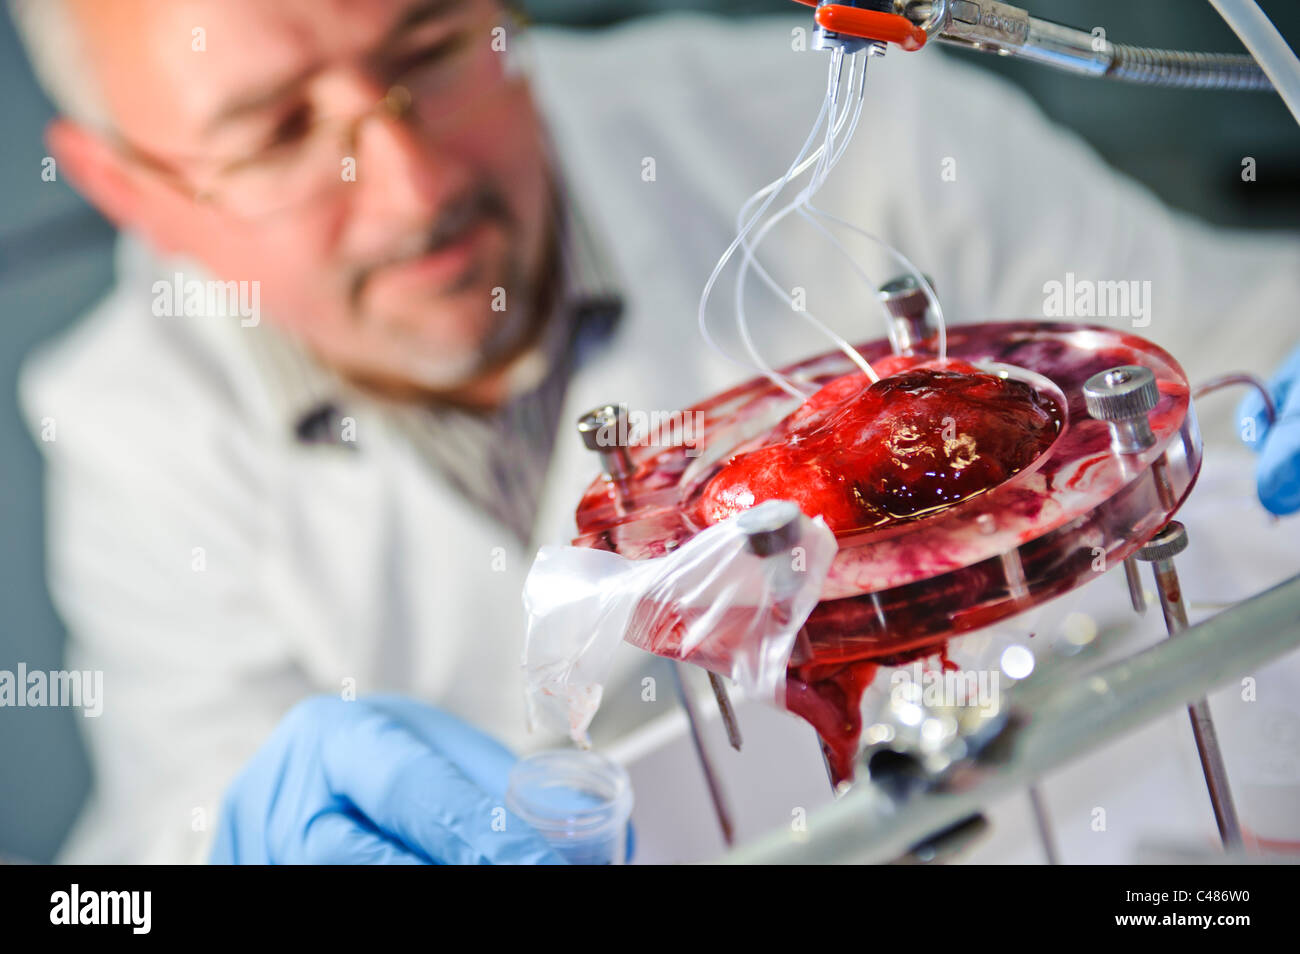 Male scientist en sarrau blanc et bleu gants perfusant un placenta humain dans un laboratoire scientifique Photo Stock